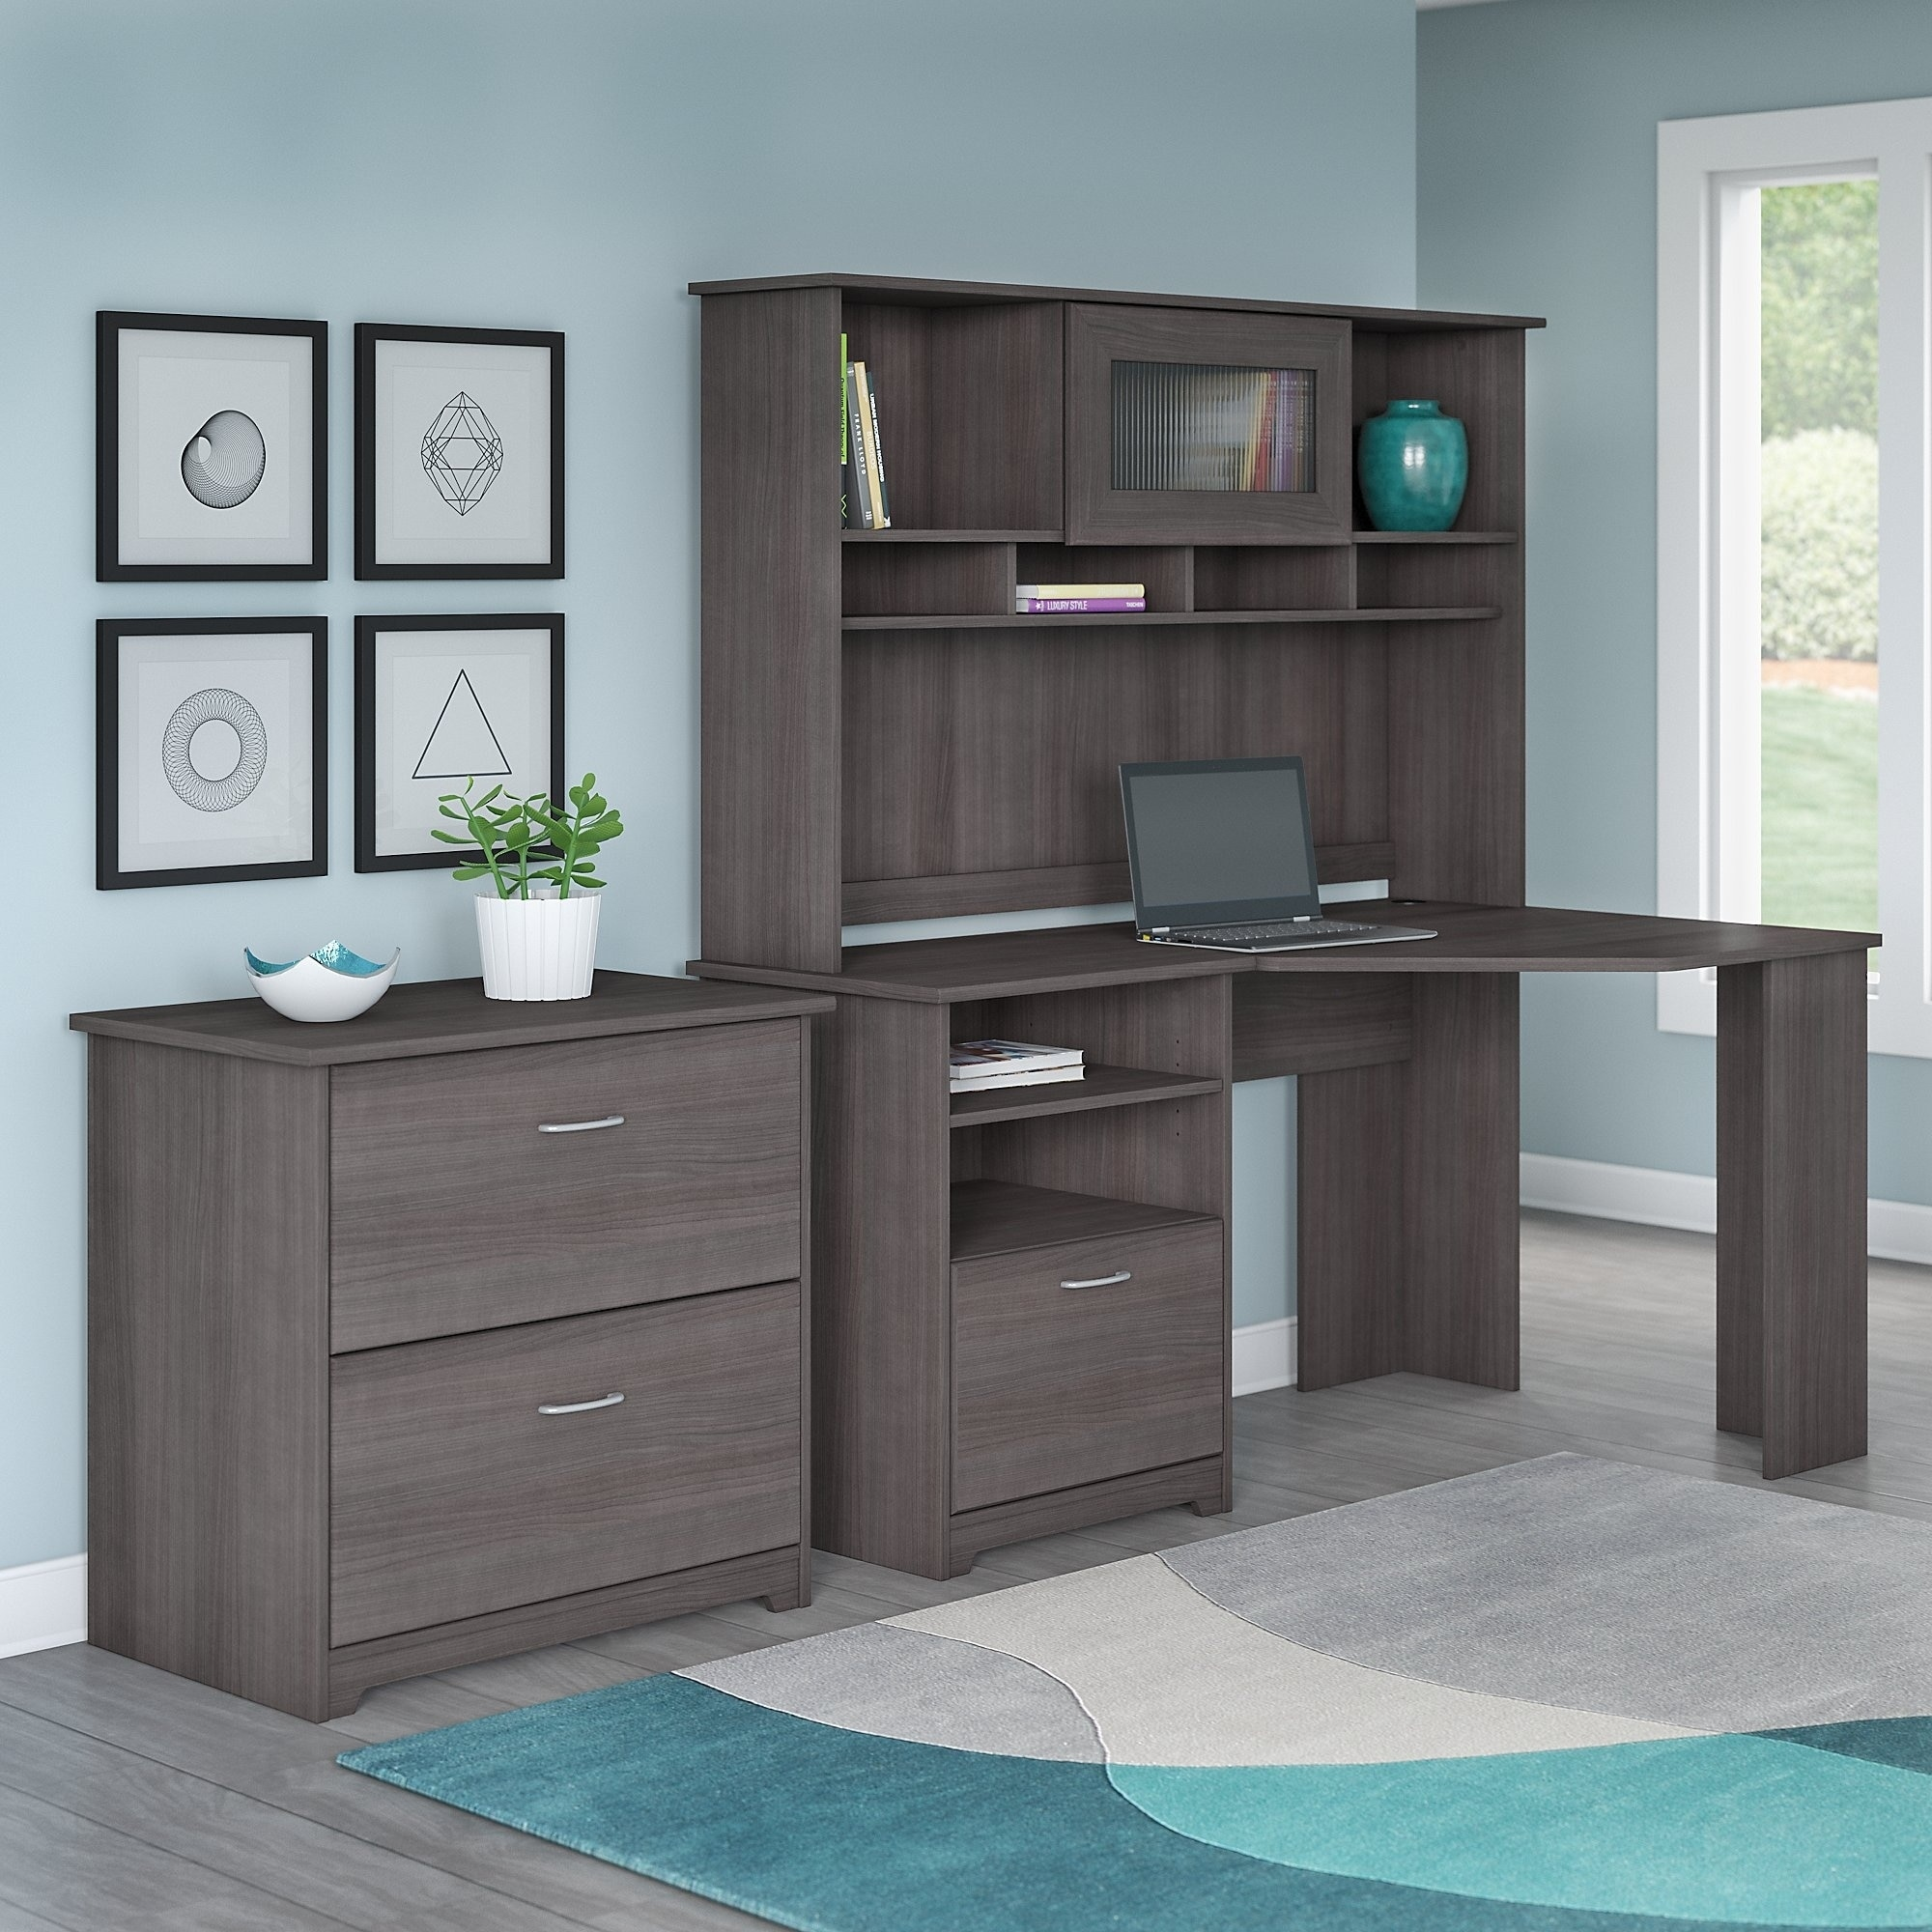 Cabot Corner Desk With Hutch And Lateral File Cabinet Free Shipping Today 10812052